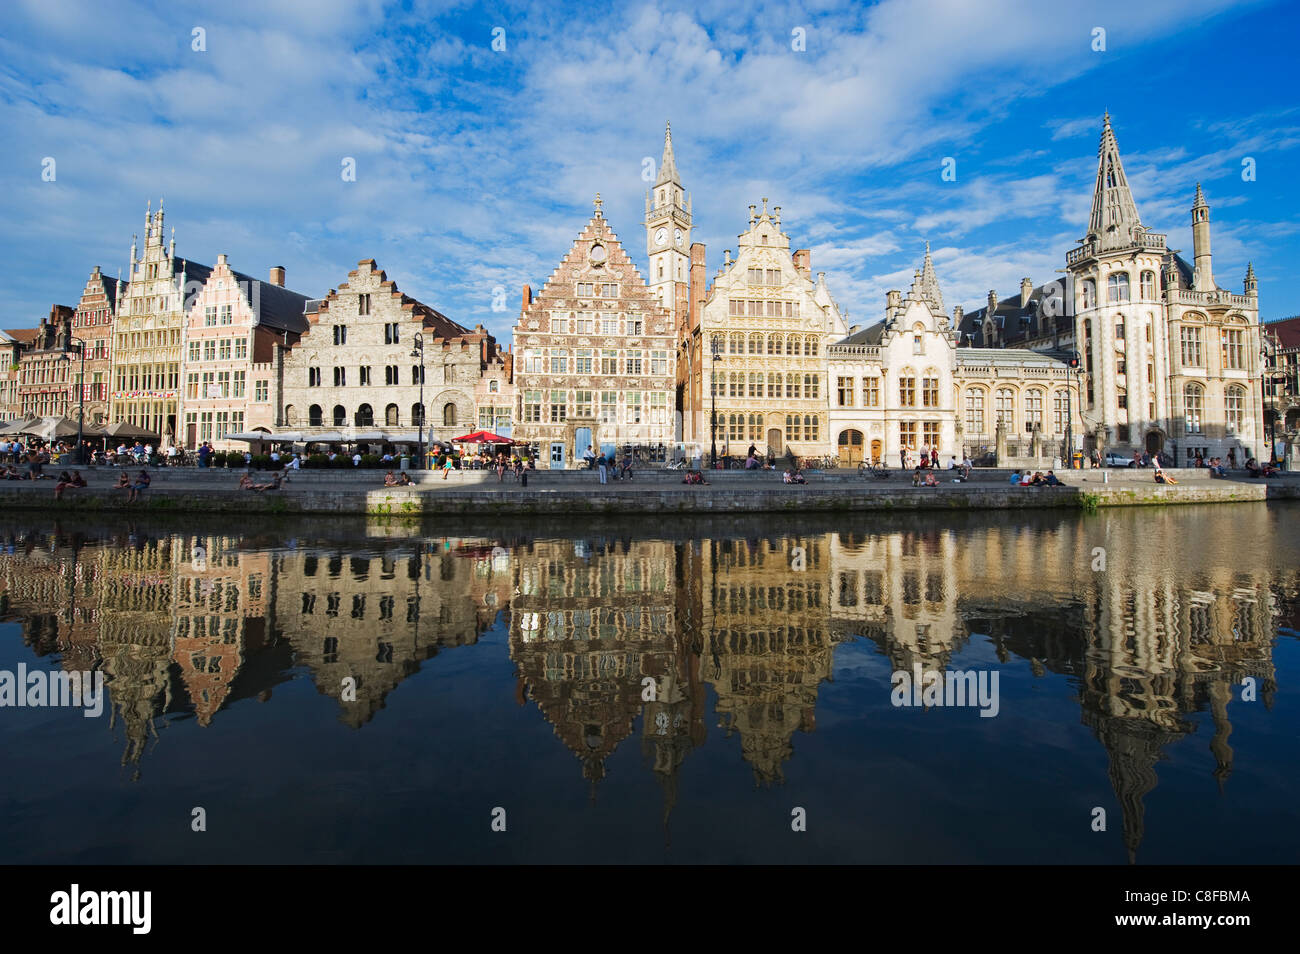 Reflection of waterfront town houses, Ghent, Flanders, Belgium - Stock Image